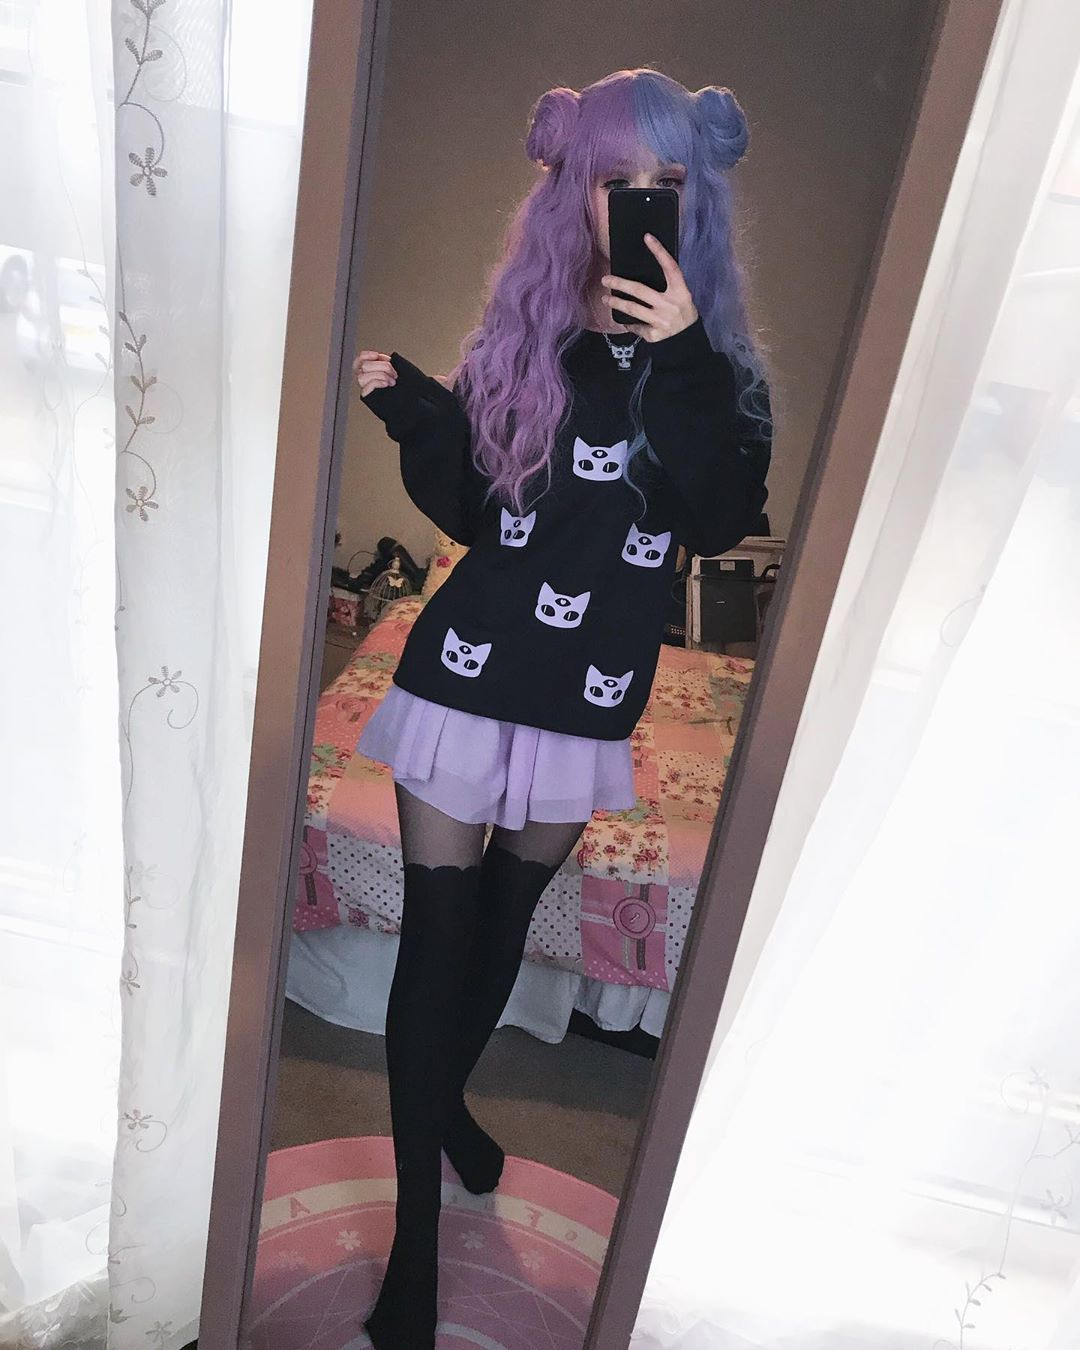 Pastel Goth Girl Kawaii Soft Grunge Sweater Aesthetic Creepy Cute Fashion Creepy Cute Fashion Pastel Goth Fashion Cute Fashion How to wear ideas for ring buckle detail pu and studded soft goth~. pastel goth girl kawaii soft grunge